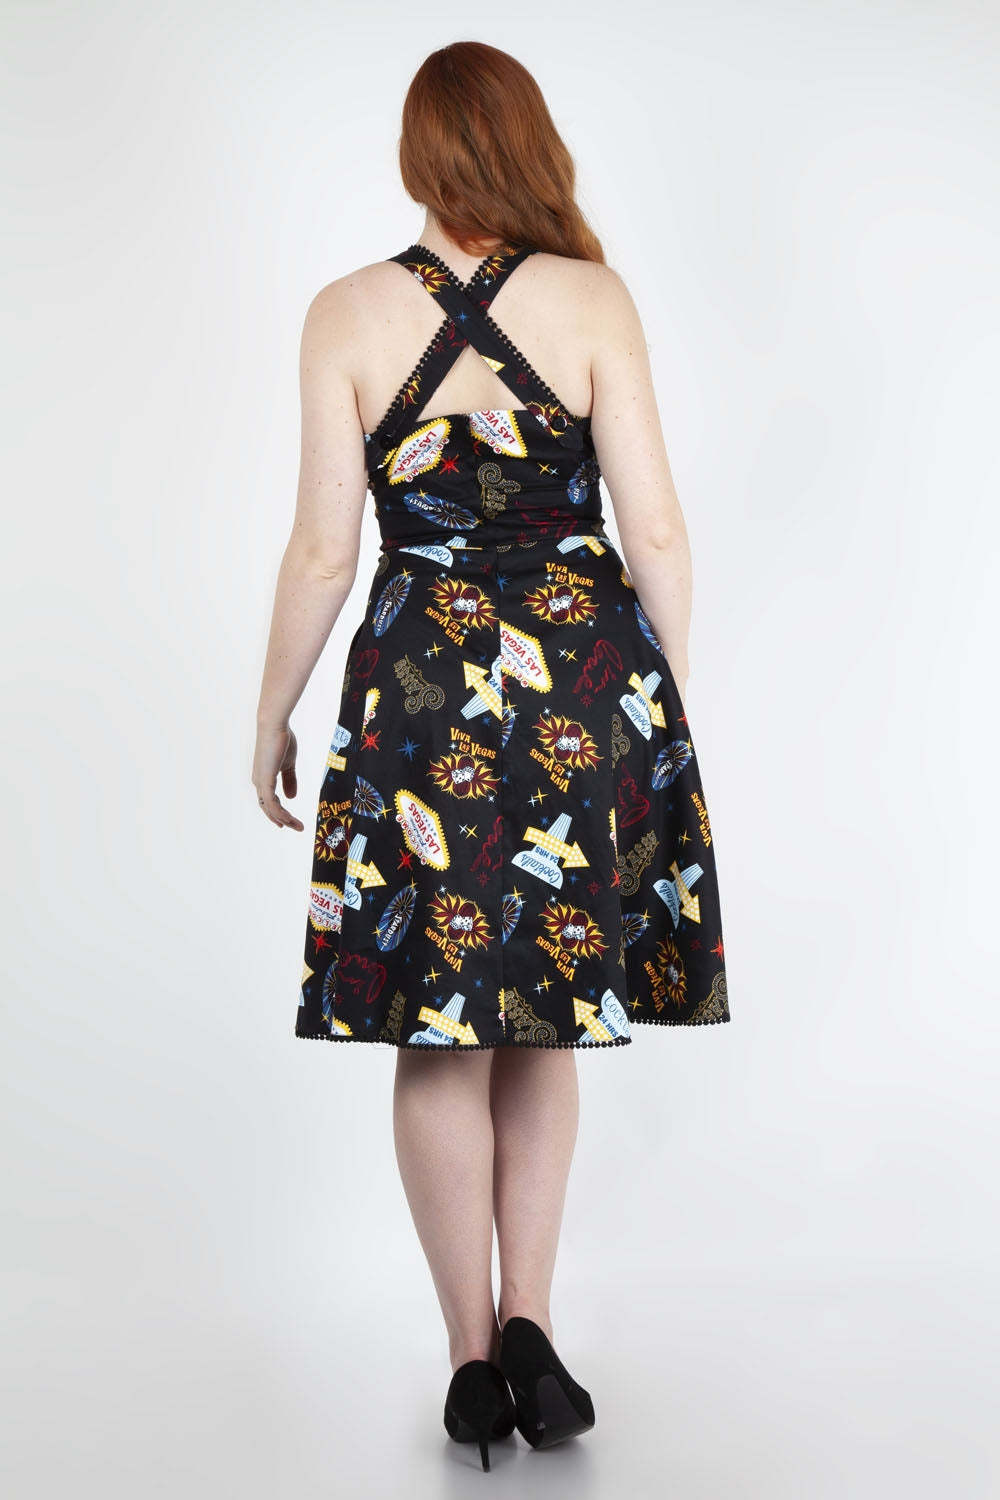 Lucy vegas print black flared dress by Voodoo Vixen